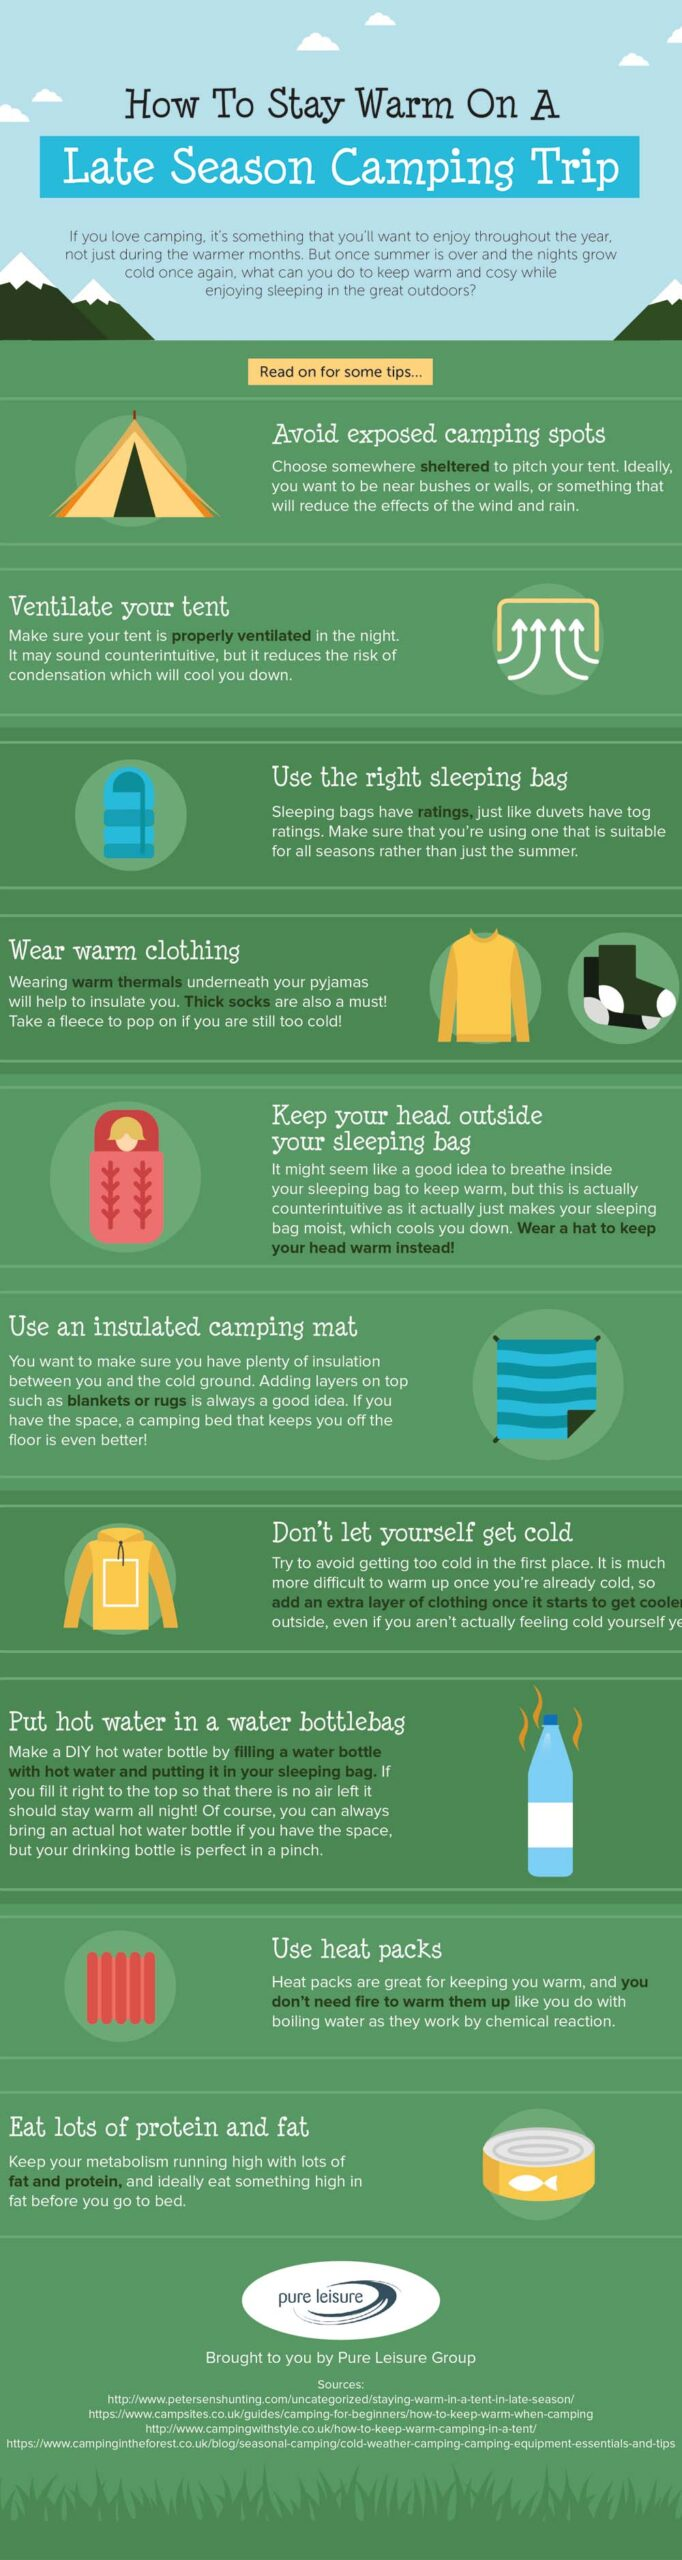 Stay Warm When Camping, an infographic by Pure Leisure